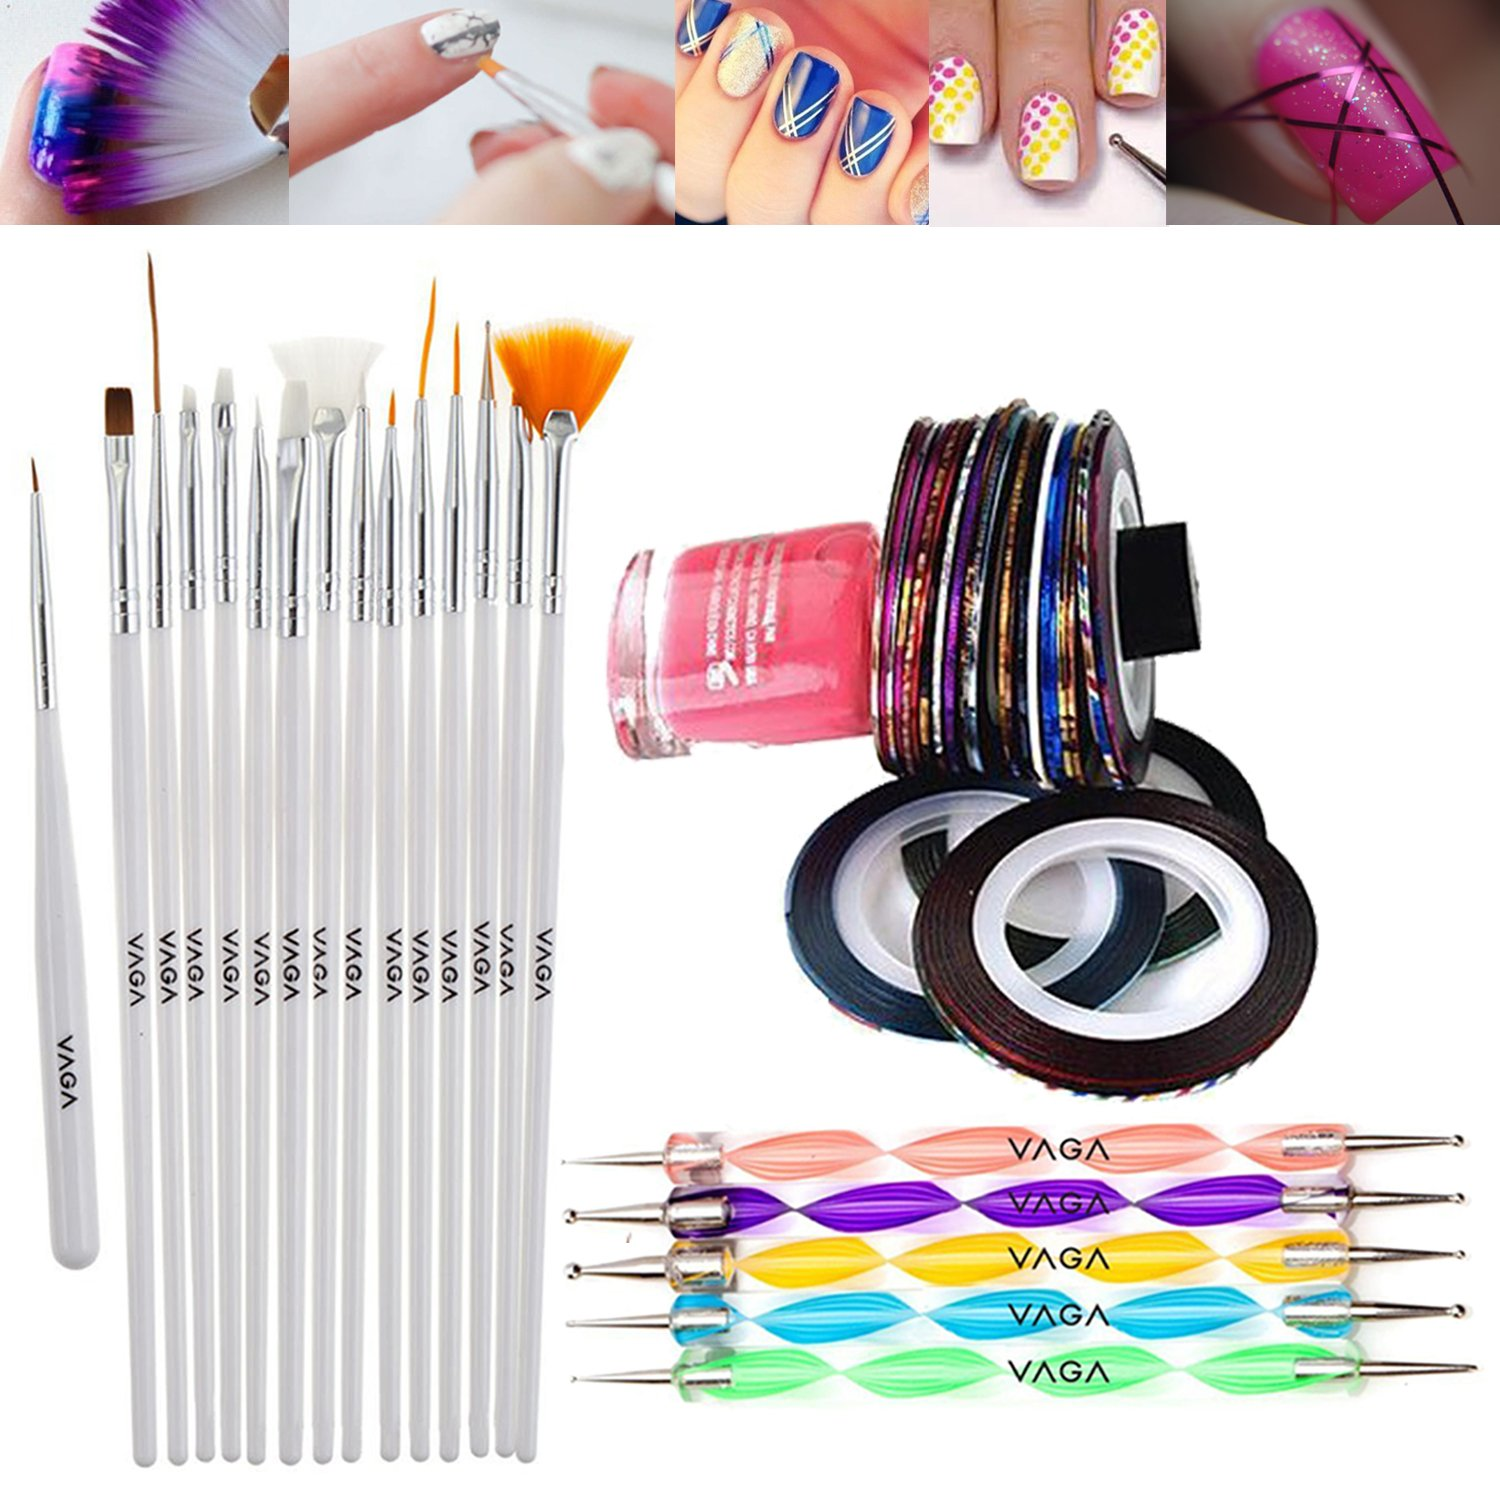 Premium Quality Professional Nail Art Set Kit With 5 Double Ended Dotters / Dotting / Marbling Tools And 10 Rolls Striping Tape / Lines Decorations Strips And 15 Brushes / Liners By VAGA®